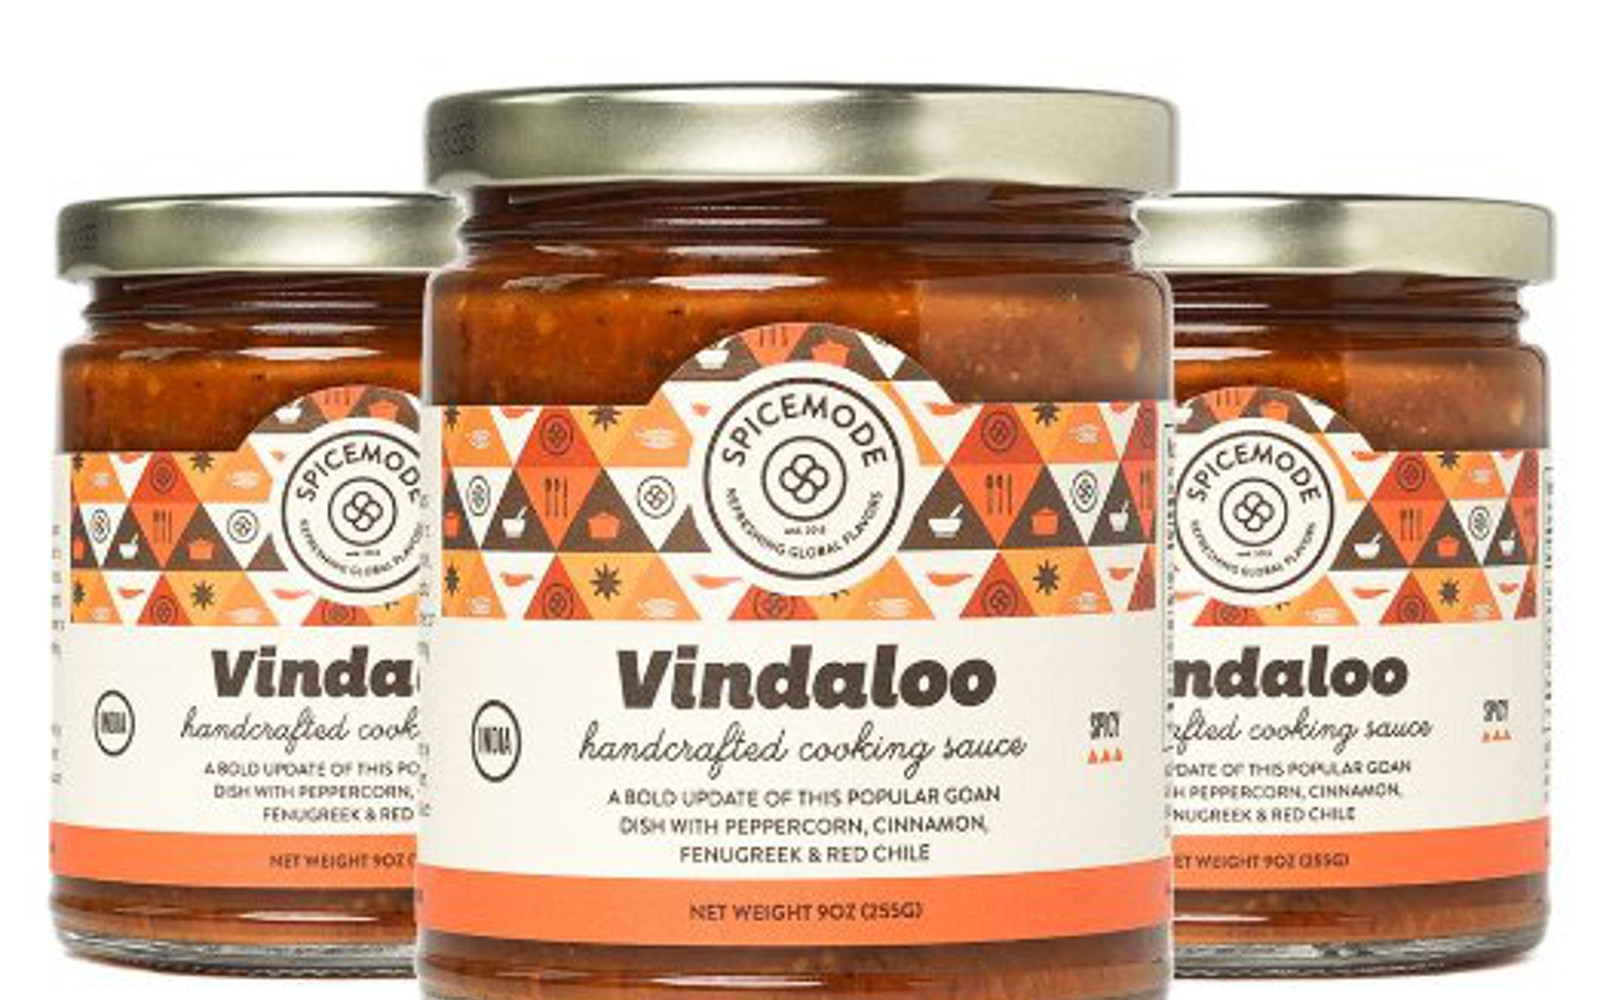 Spicemode Vindaloo Cooking Sauce